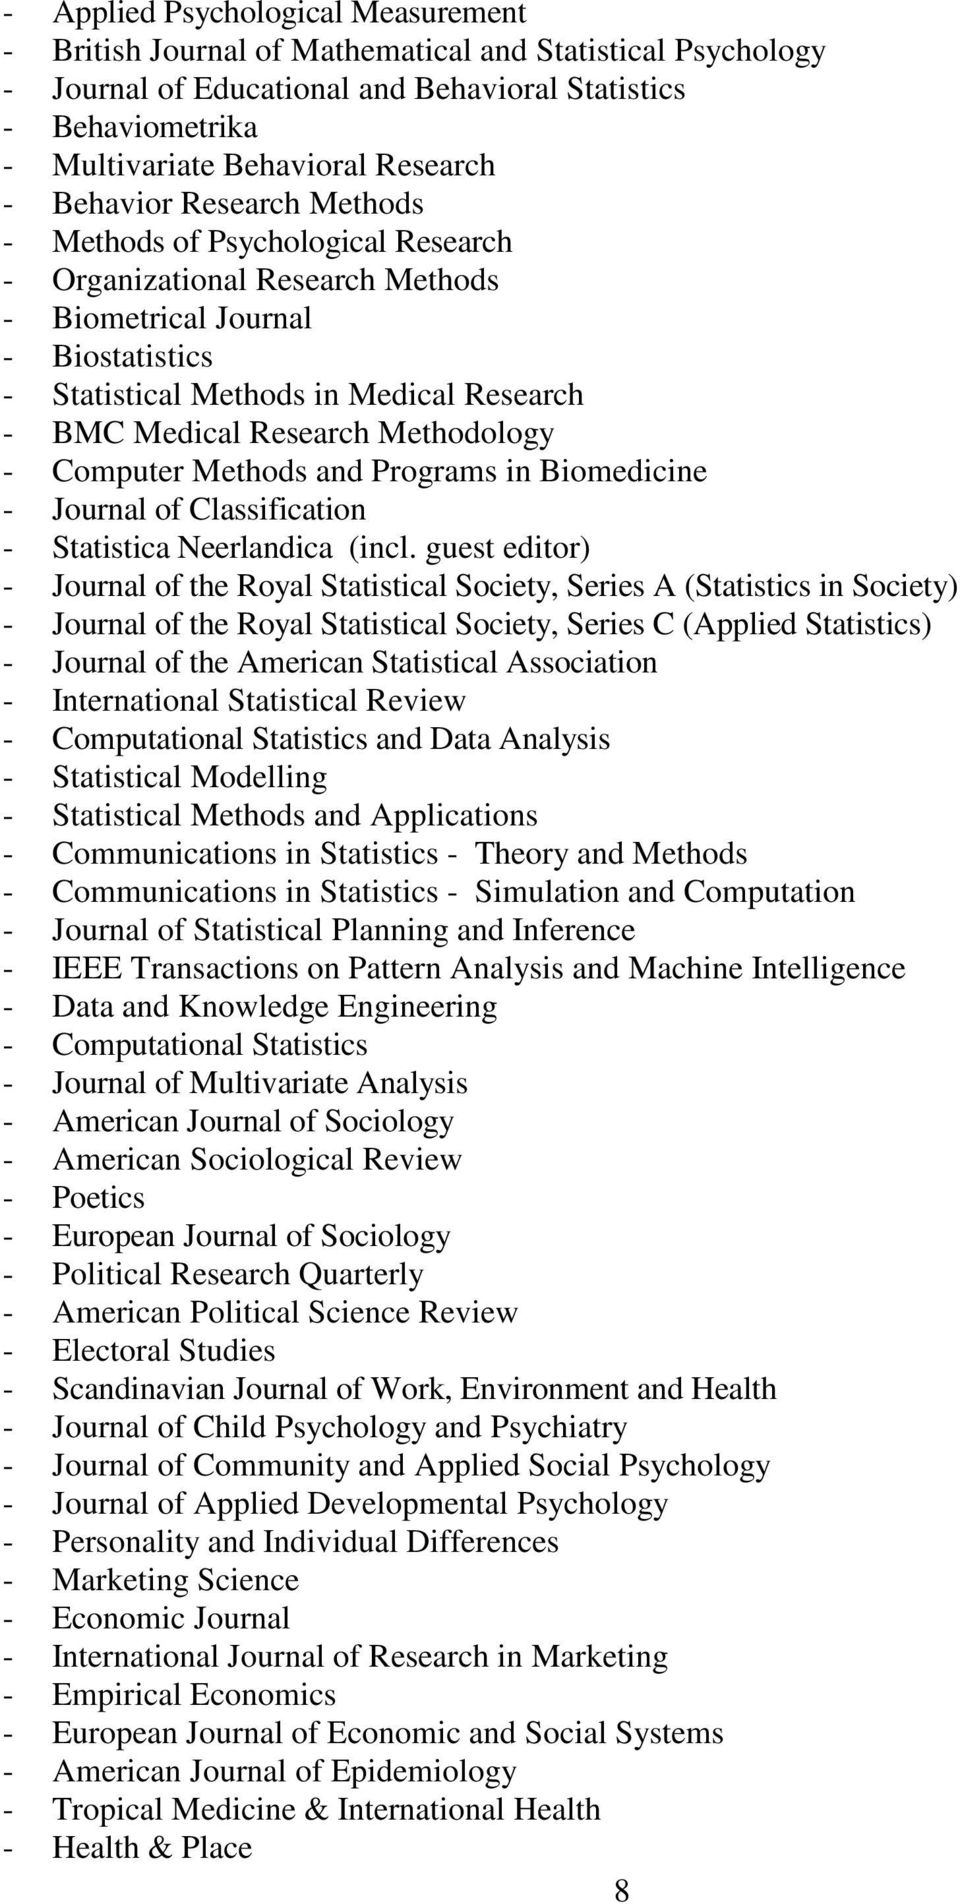 Research Methodology - Computer Methods and Programs in Biomedicine - Journal of Classification - Statistica Neerlandica (incl.